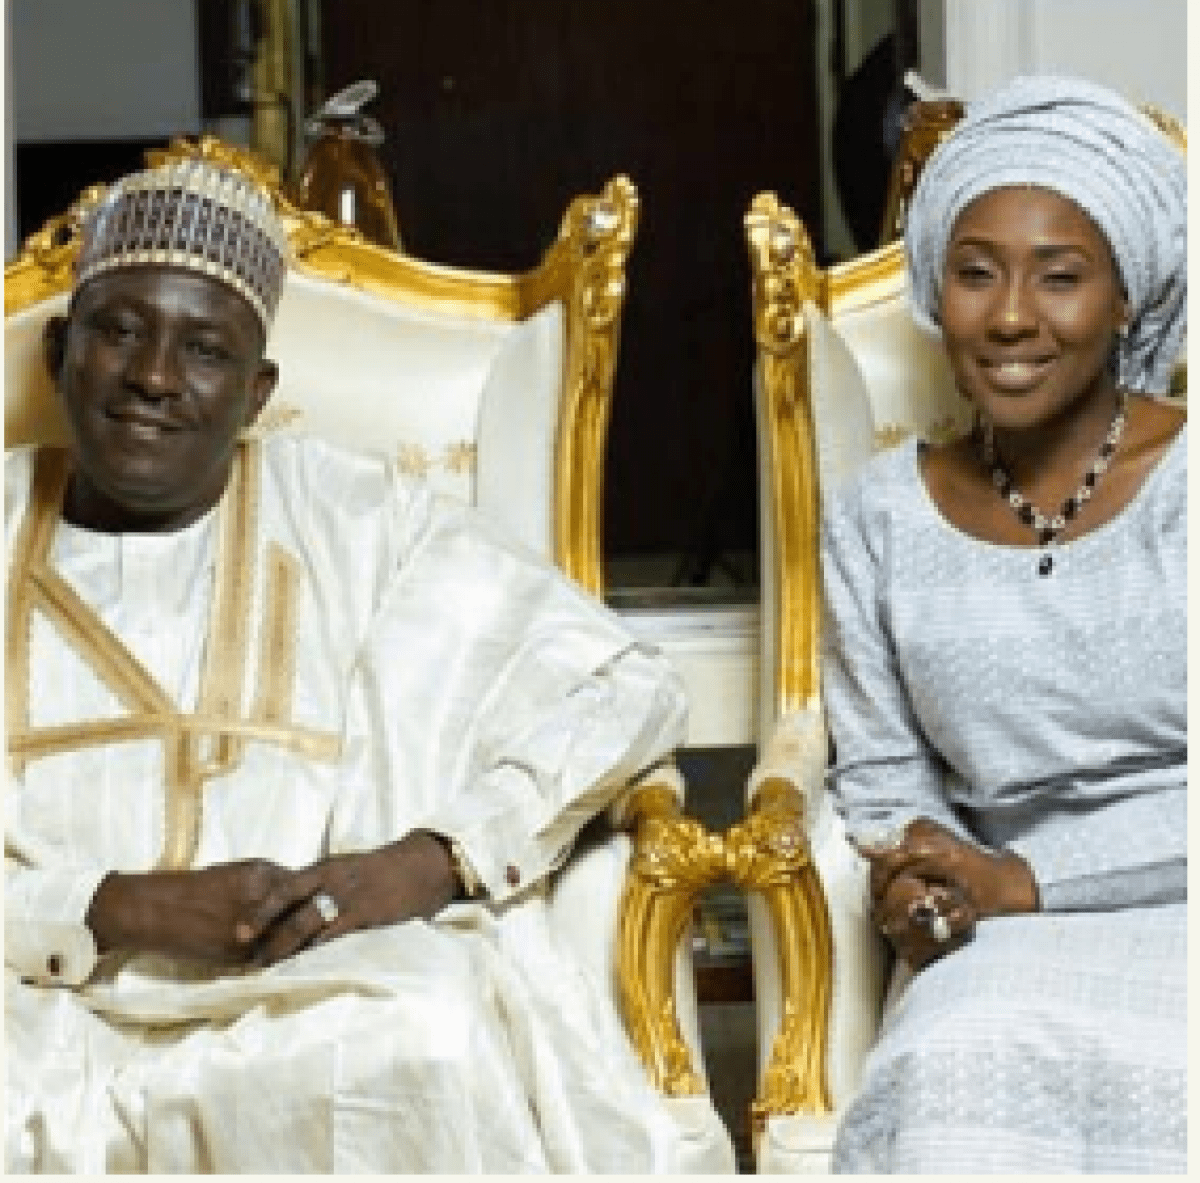 Buhari's Son-In-Law, Gimba Yau Kumo, 2 Others Declared Wanted Over $65m Fraud